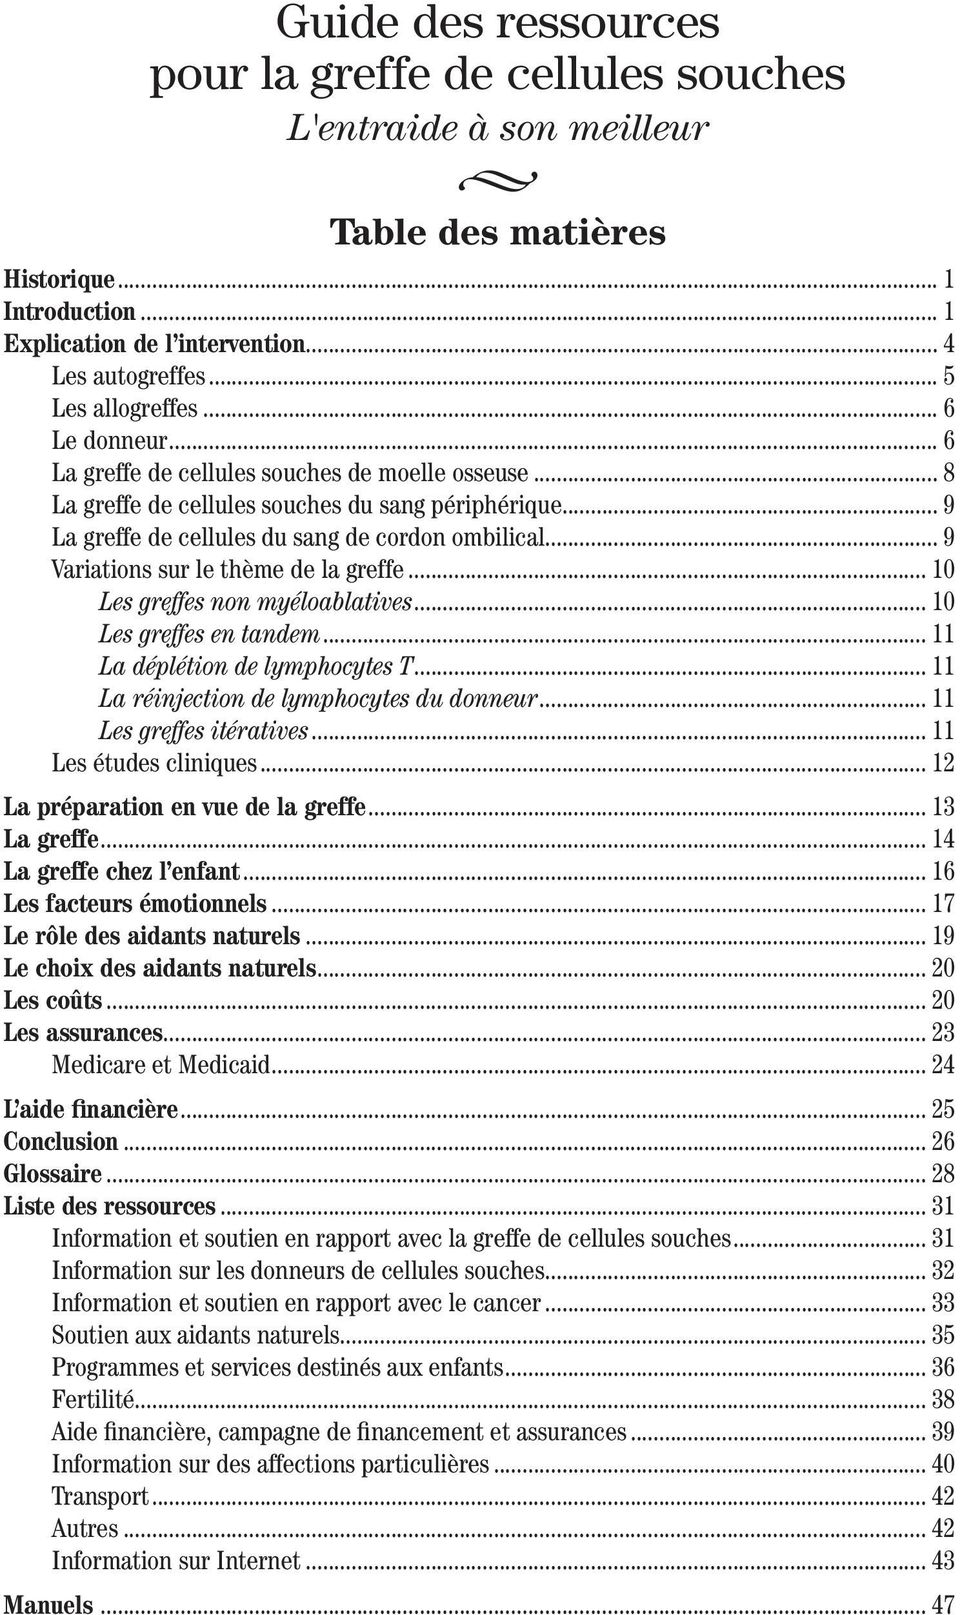 .. 9 Variations sur le thème de la greffe... 10 Les greffes non myéloablatives... 10 Les greffes en tandem... 11 La déplétion de lymphocytes T... 11 La réinjection de lymphocytes du donneur.